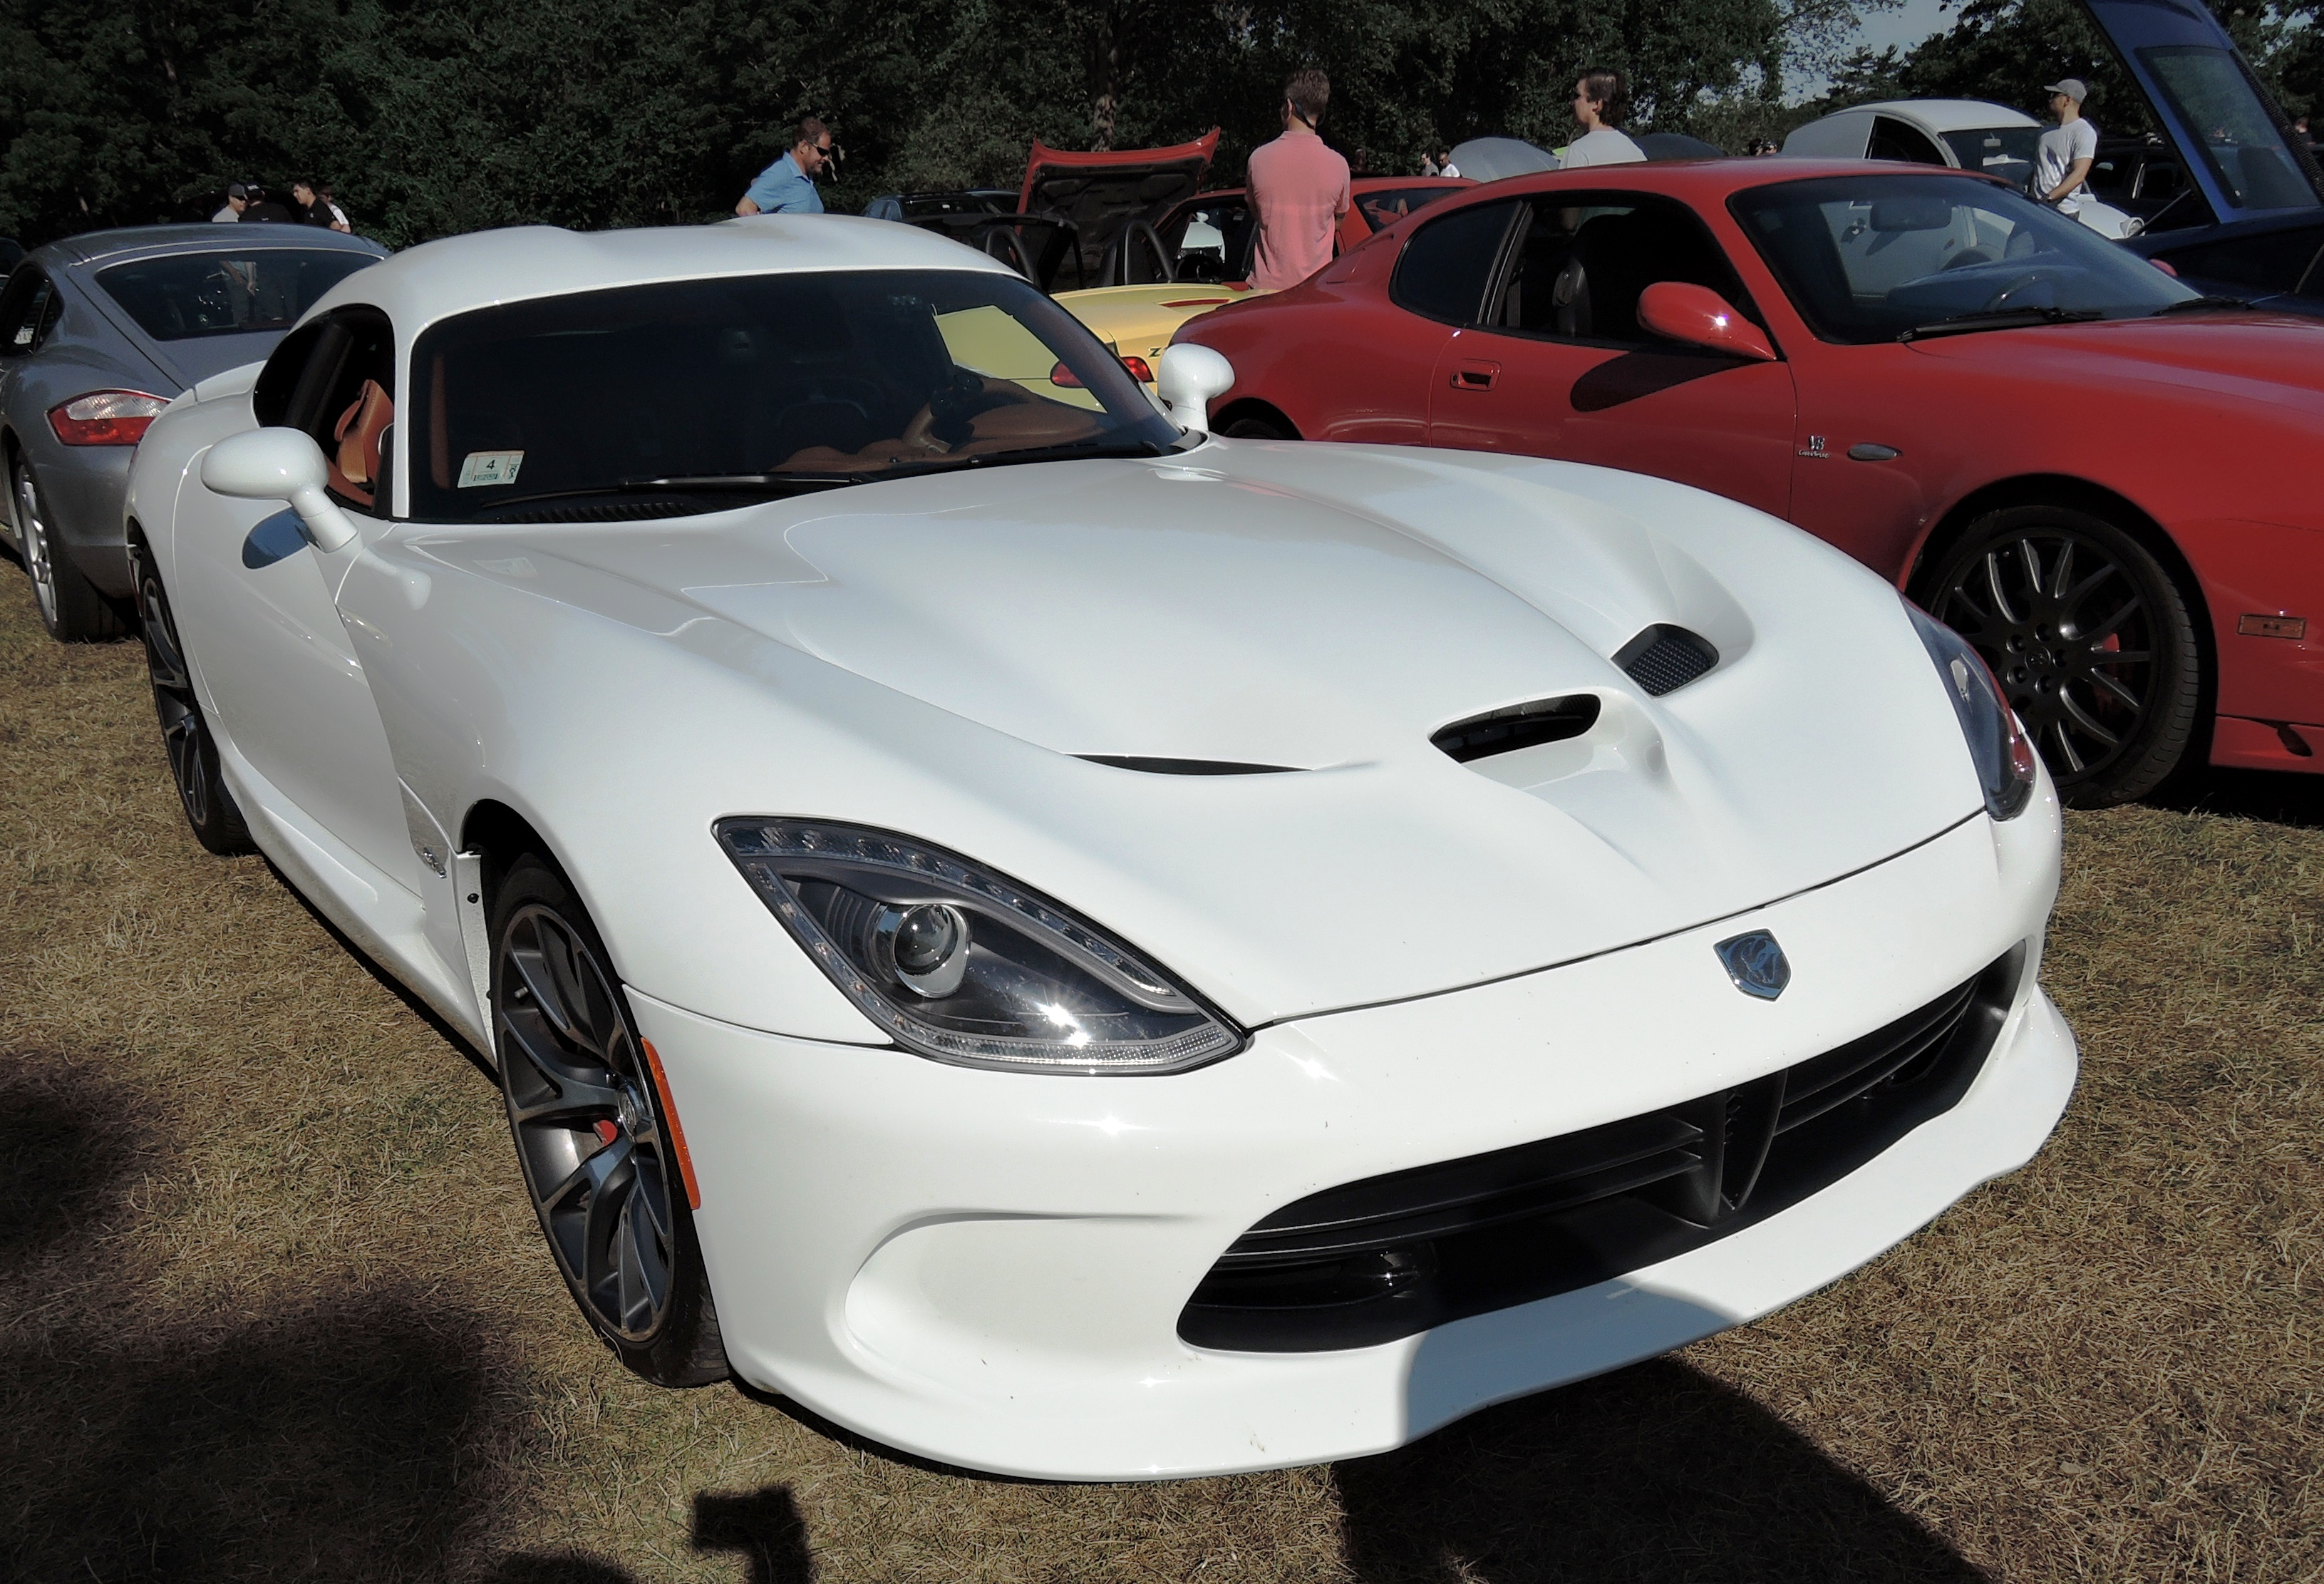 white viper - Cars and coffee at larz